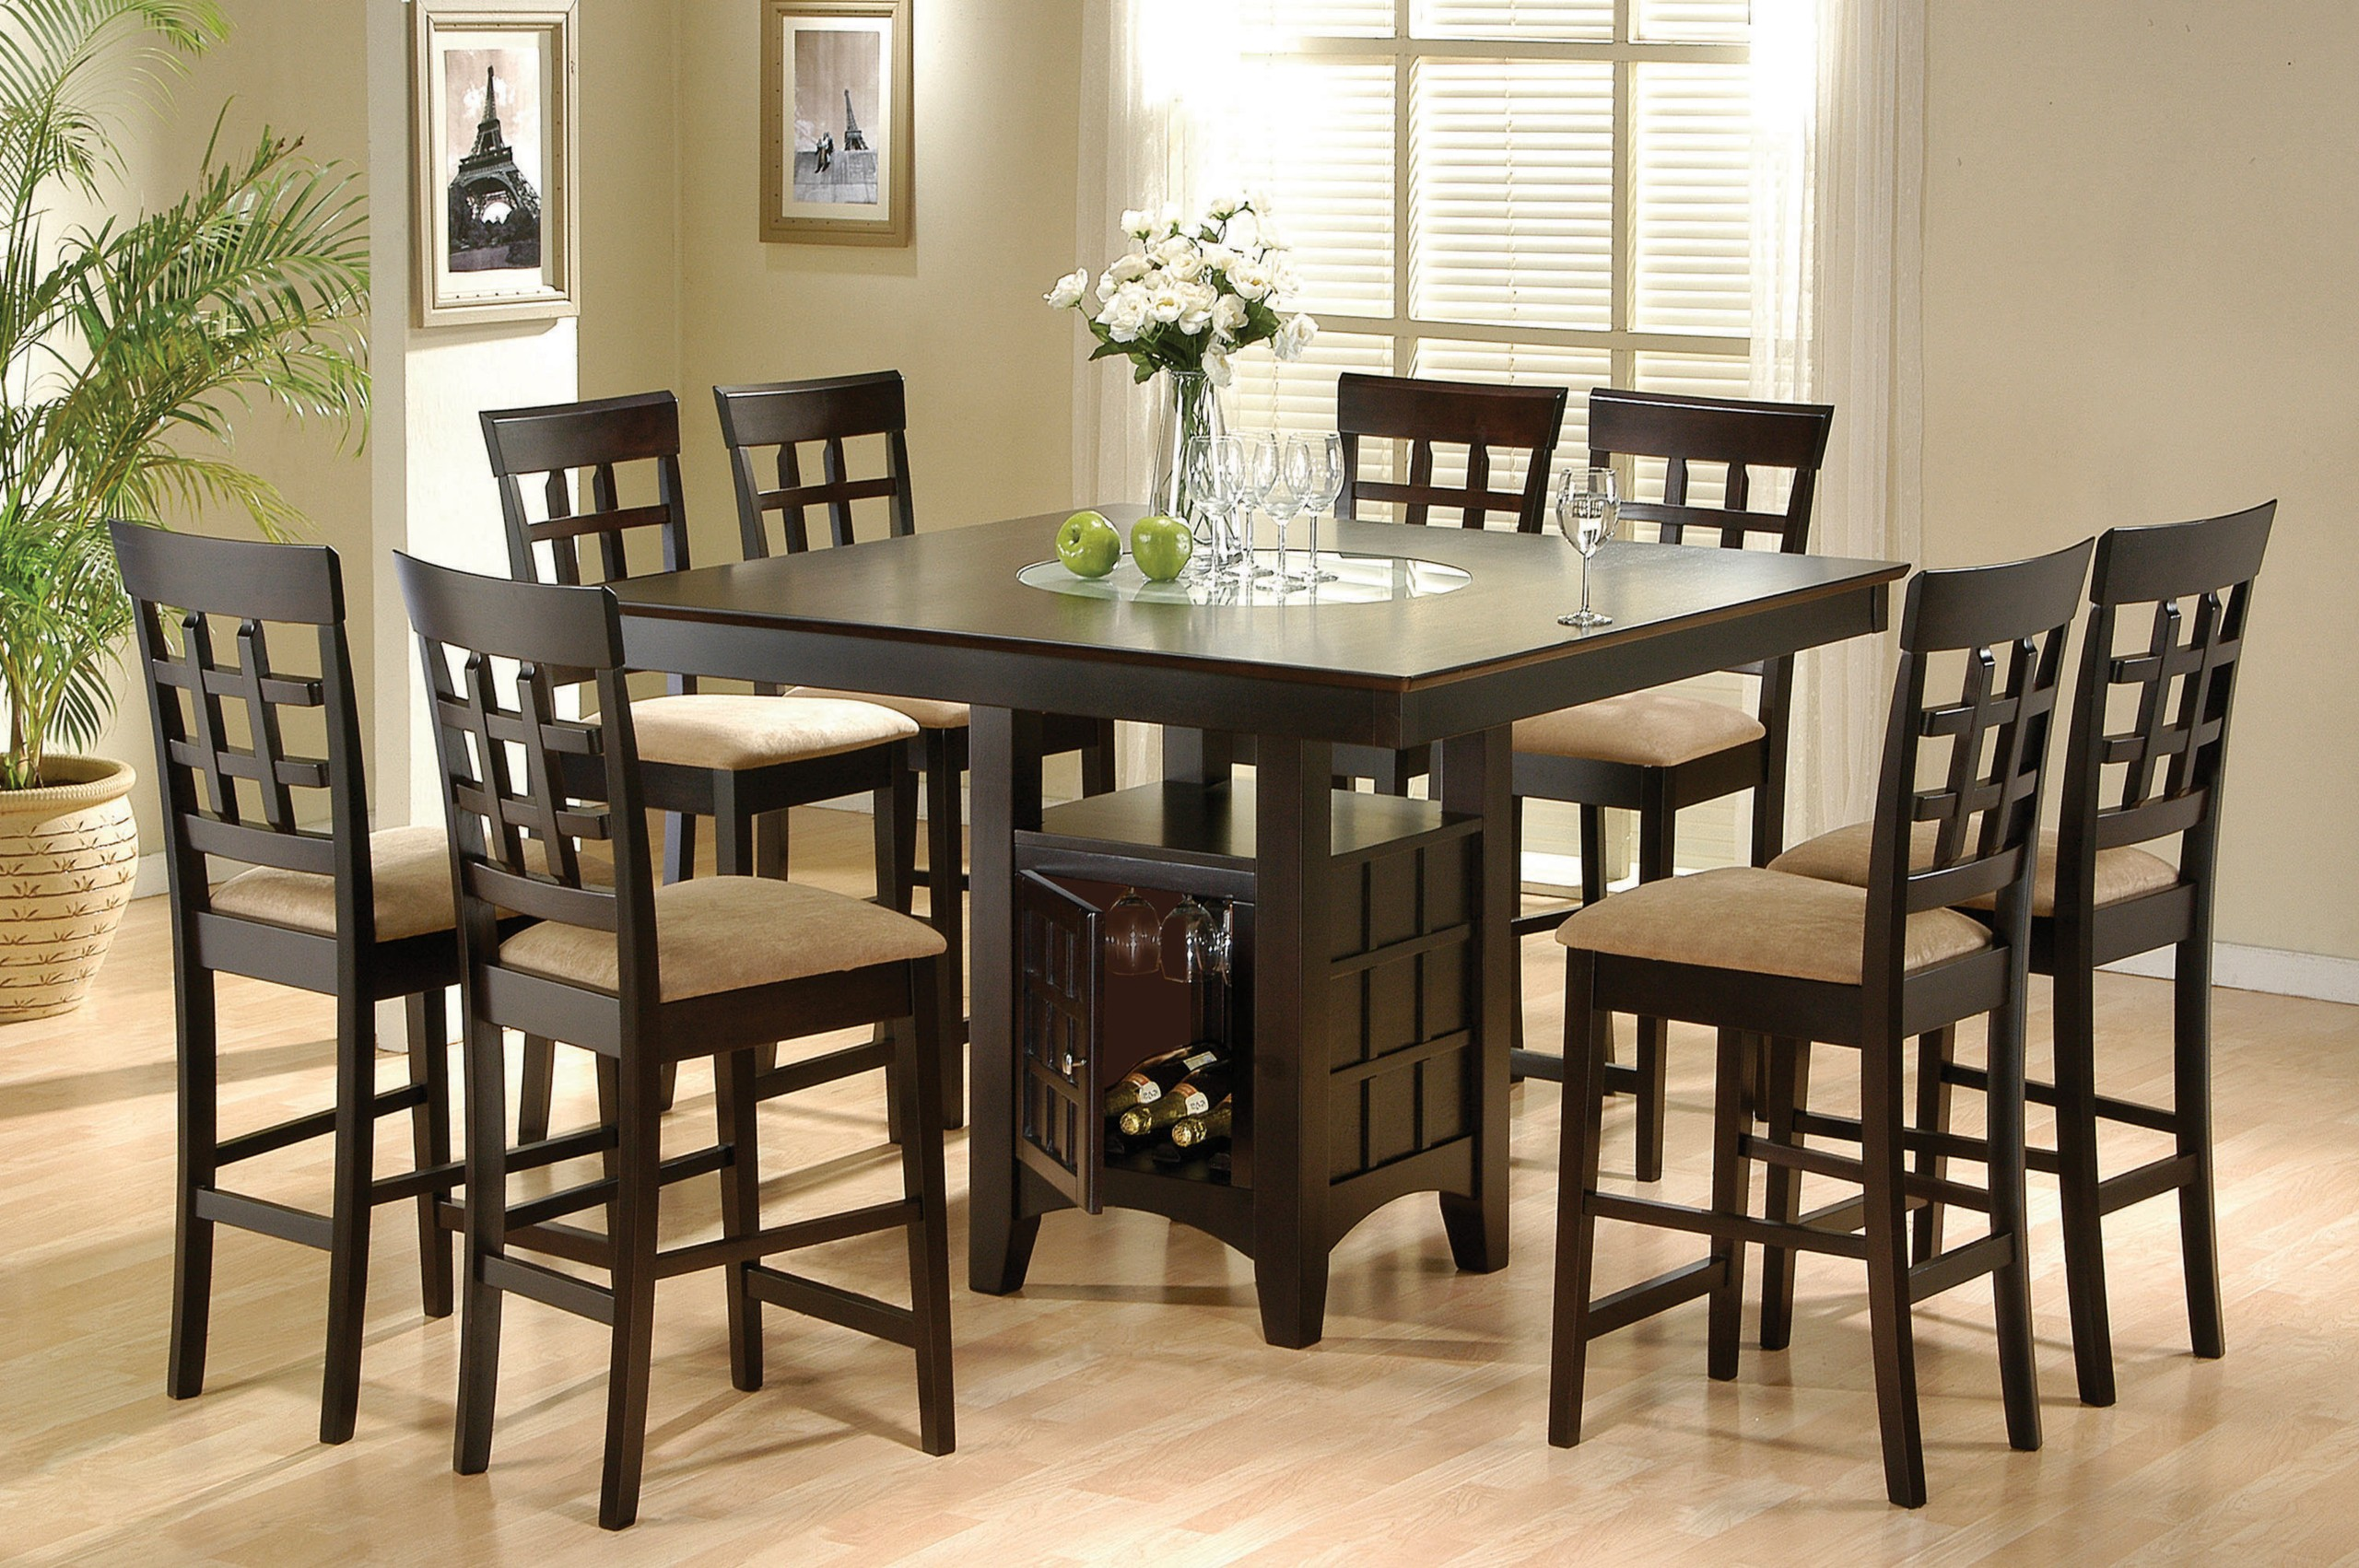 Beau Square 8 Seater Dining Table 4